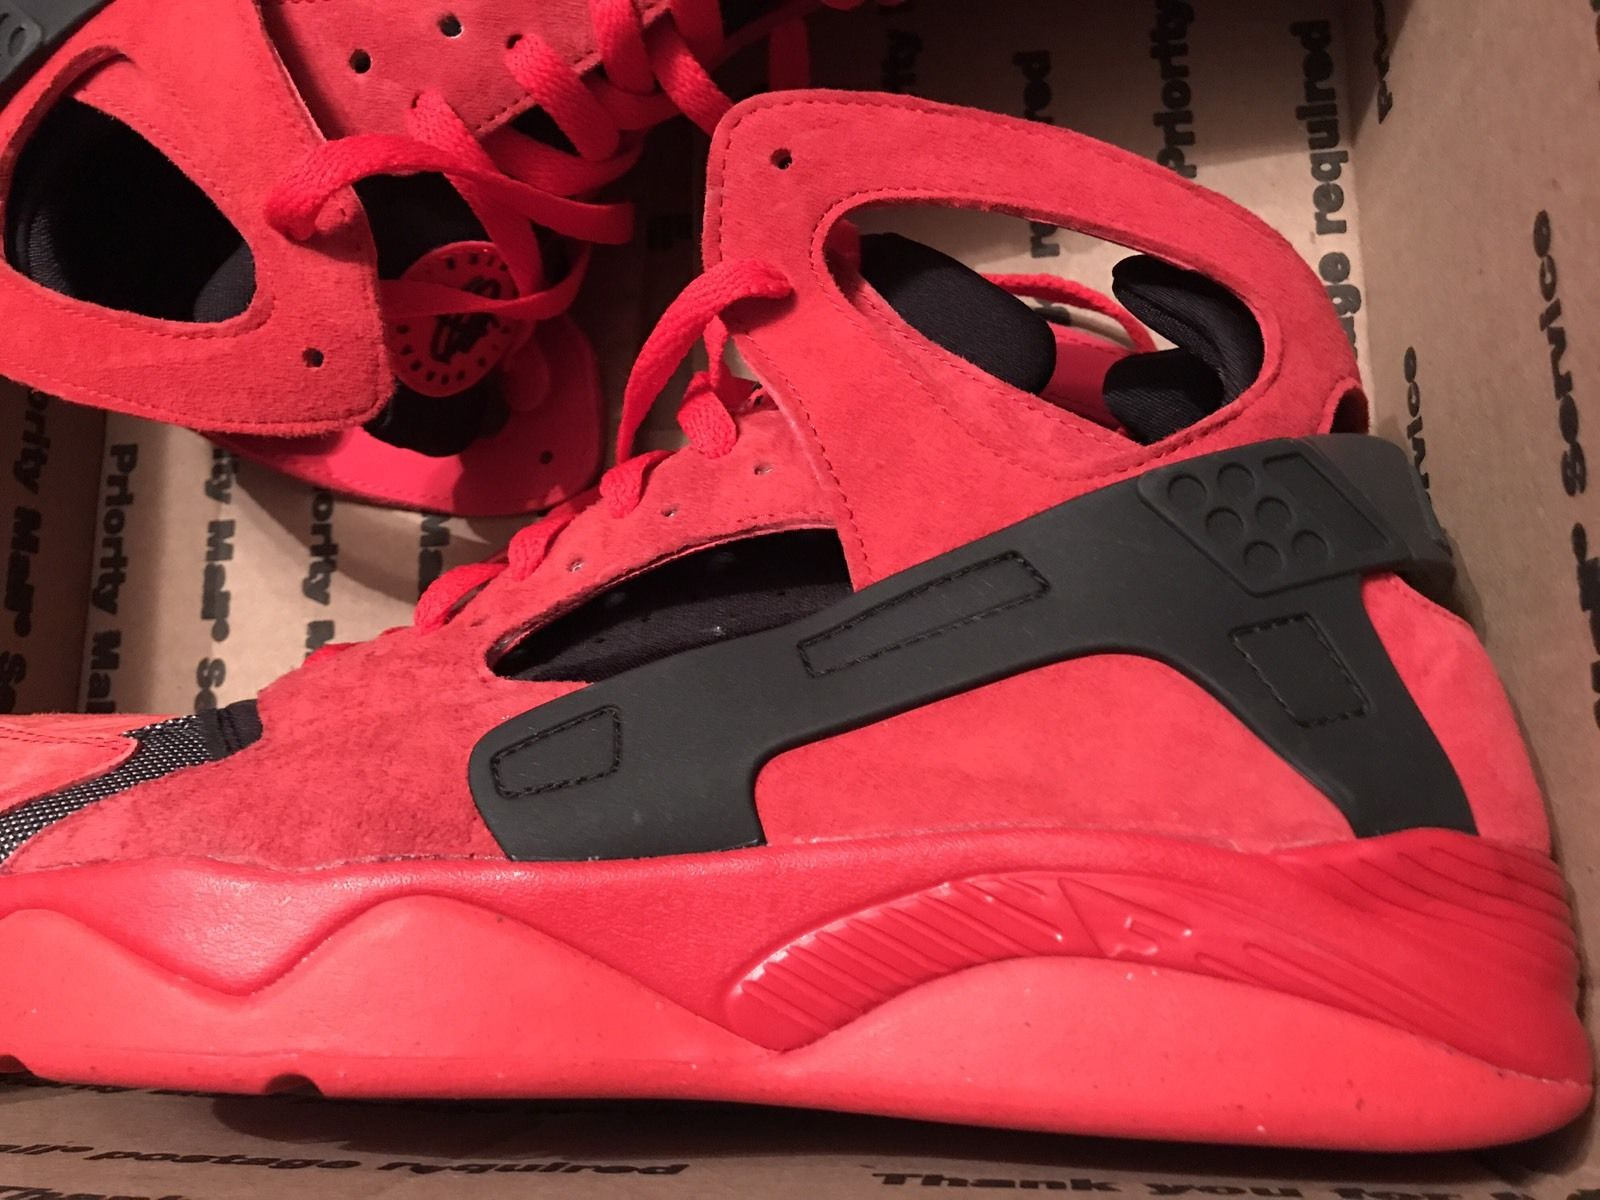 71d841140fe7 Nike Air Flight Huarache - Red Love Hate - Size 13 - Red Suede - New ...